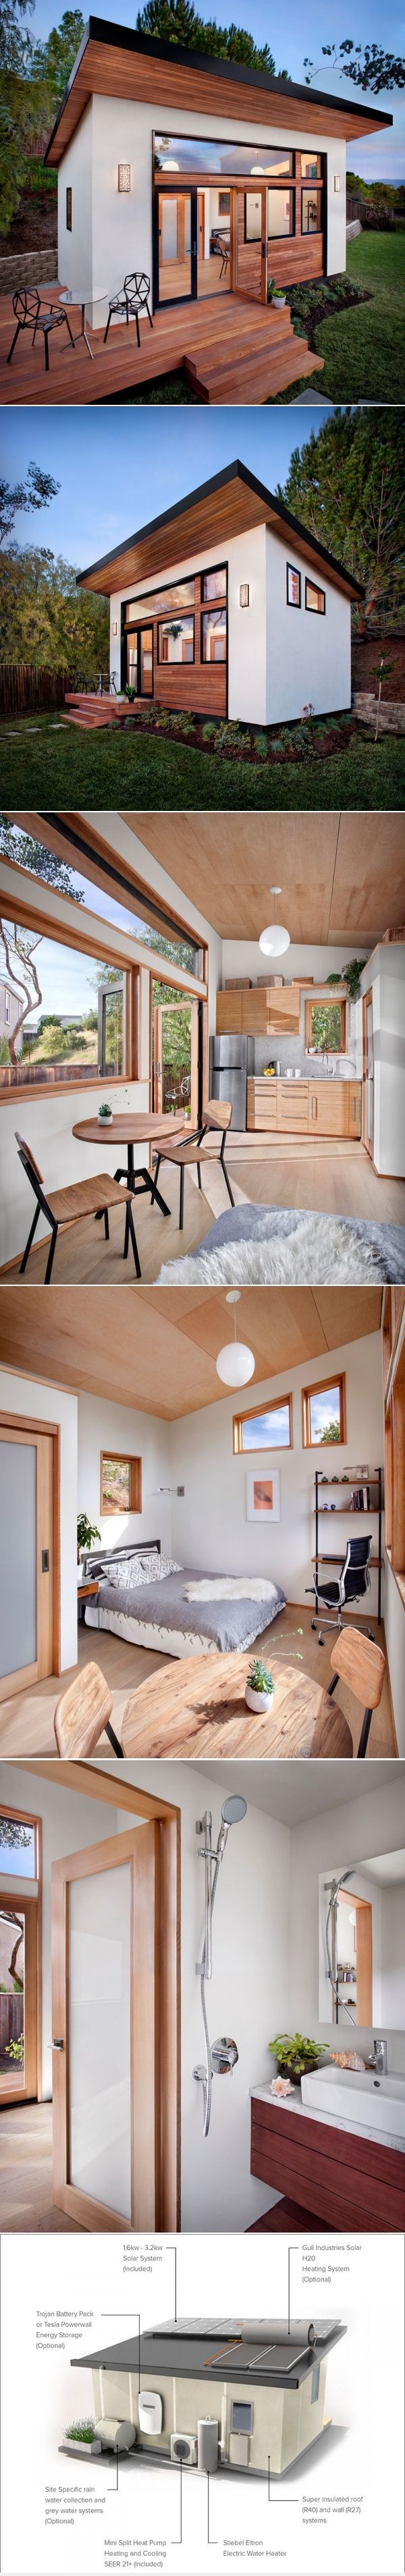 This small backyard guest house is big on ideas for compact living | CONTEMPORIST